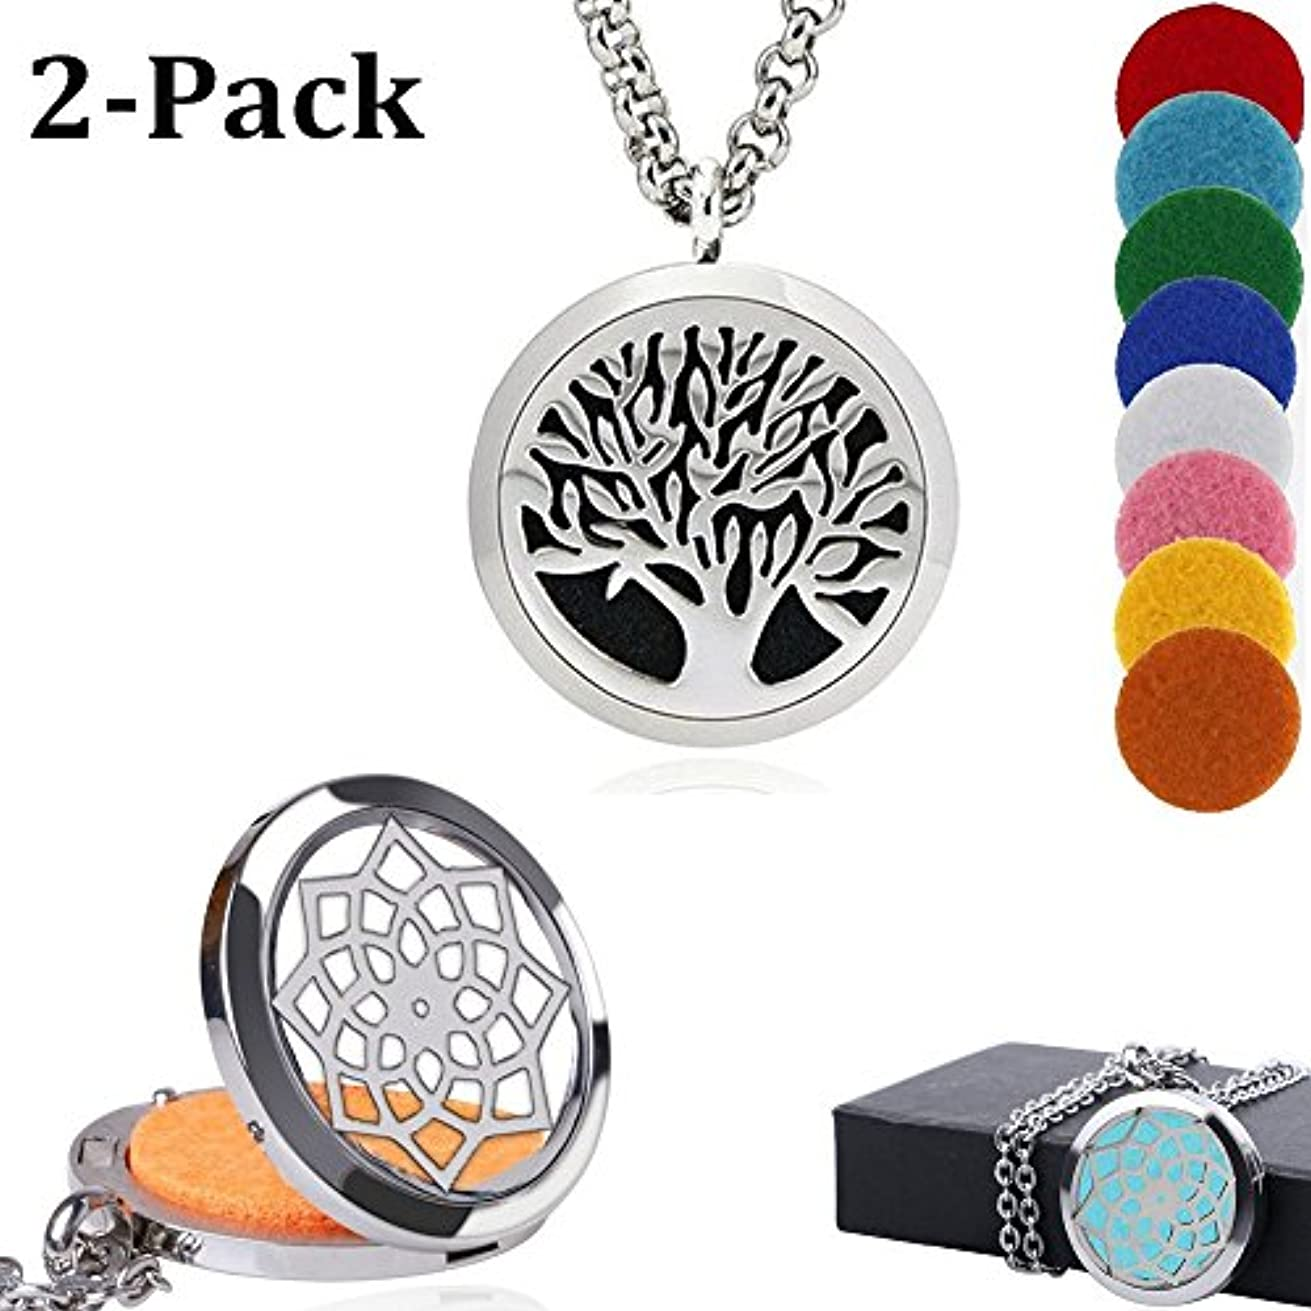 概してマラソンアトラスablerv Car Air Freshener Perfume Essential Oil Diffuser – Tree of Life 38 mmステンレススチールロケットwith Ventクリップfor Aromatherapy...